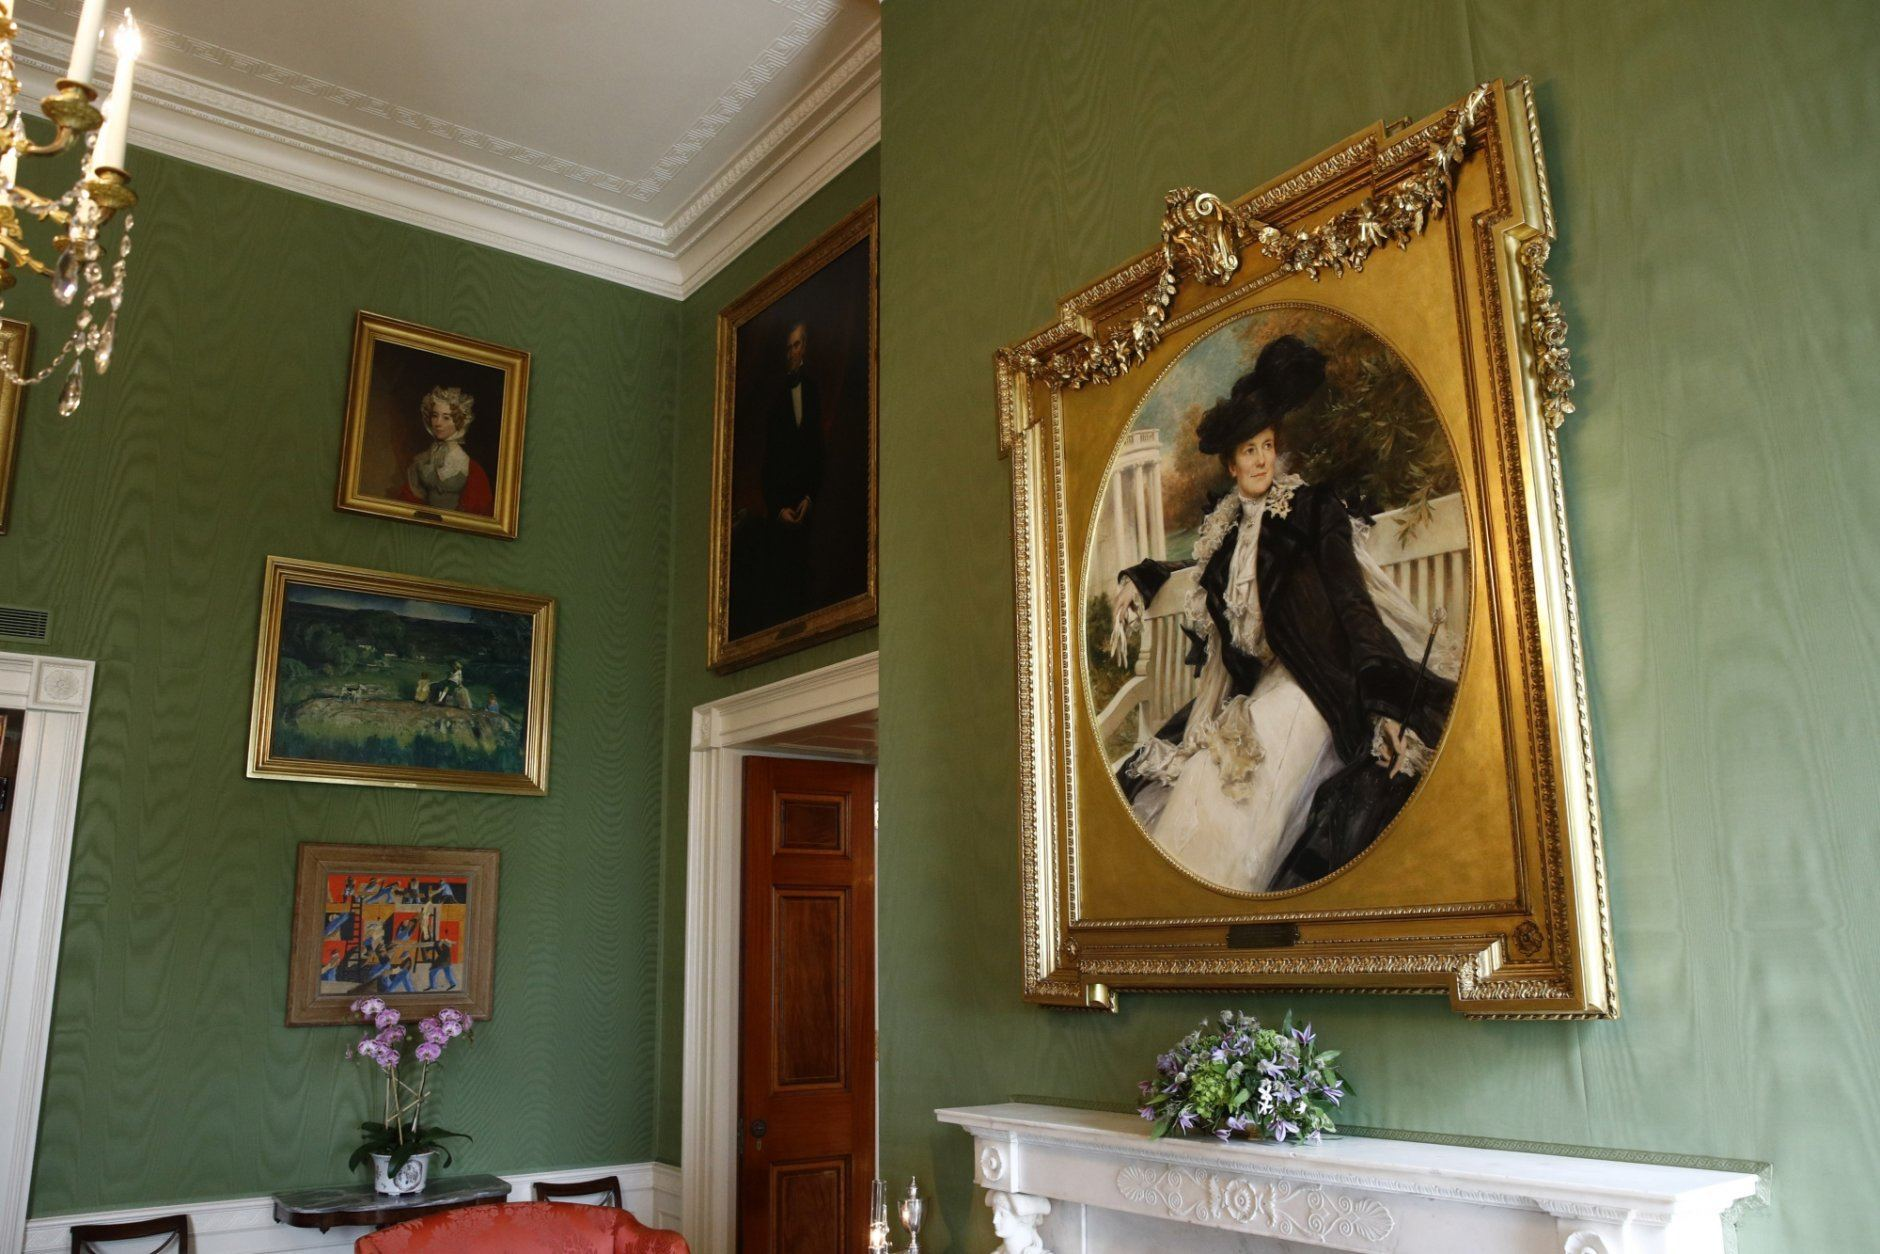 This Sept. 17, 2019, photo shows a portrait of former first lady Edith Roosevelt, right, wife of President Theodore Roosevelt, in the Green Room of the White House in Washington. The portrait was placed in the Green Room as part of the improvement projects first lady Melania Trump has overseen to keep the well-trod public rooms at 1600 Pennsylvania Avenue looking their museum-quality best. (AP Photo/Patrick Semansky)